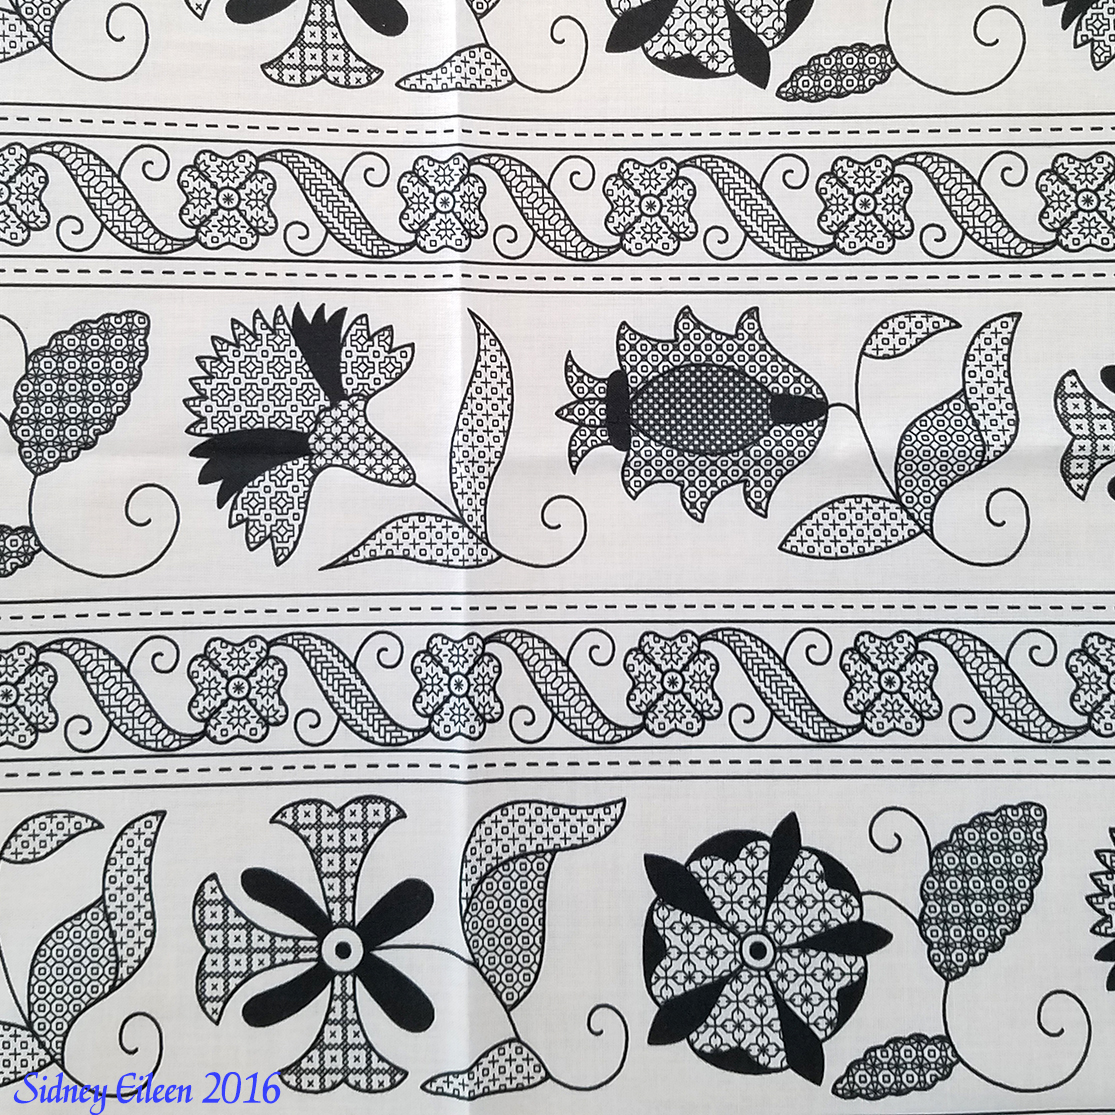 Detailed Elizabethan Blackwork Floral Bands on Spoonflower Fabric, by Sidney Eileen